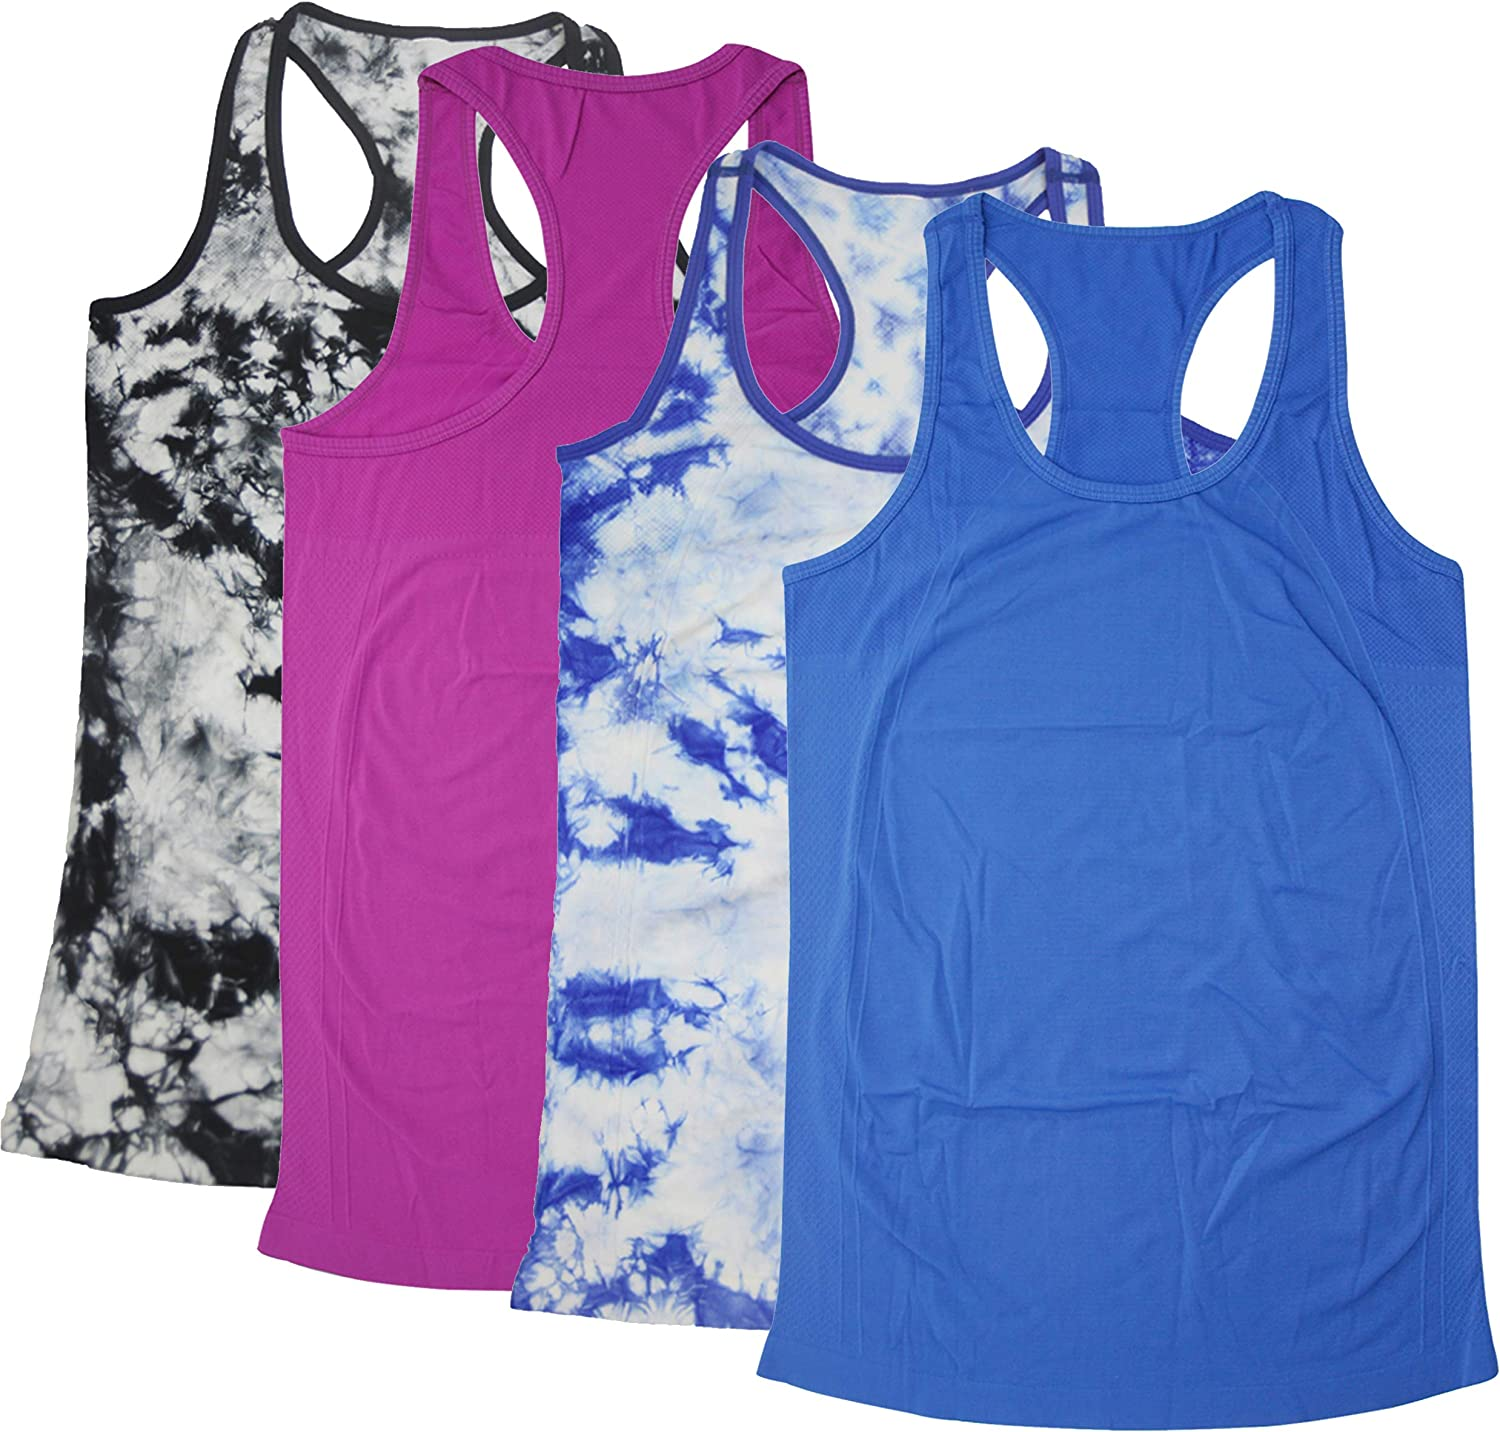 BollyQueena Workout Tank Tops for Casual Racerback In a popularity Basic Ranking TOP4 Women